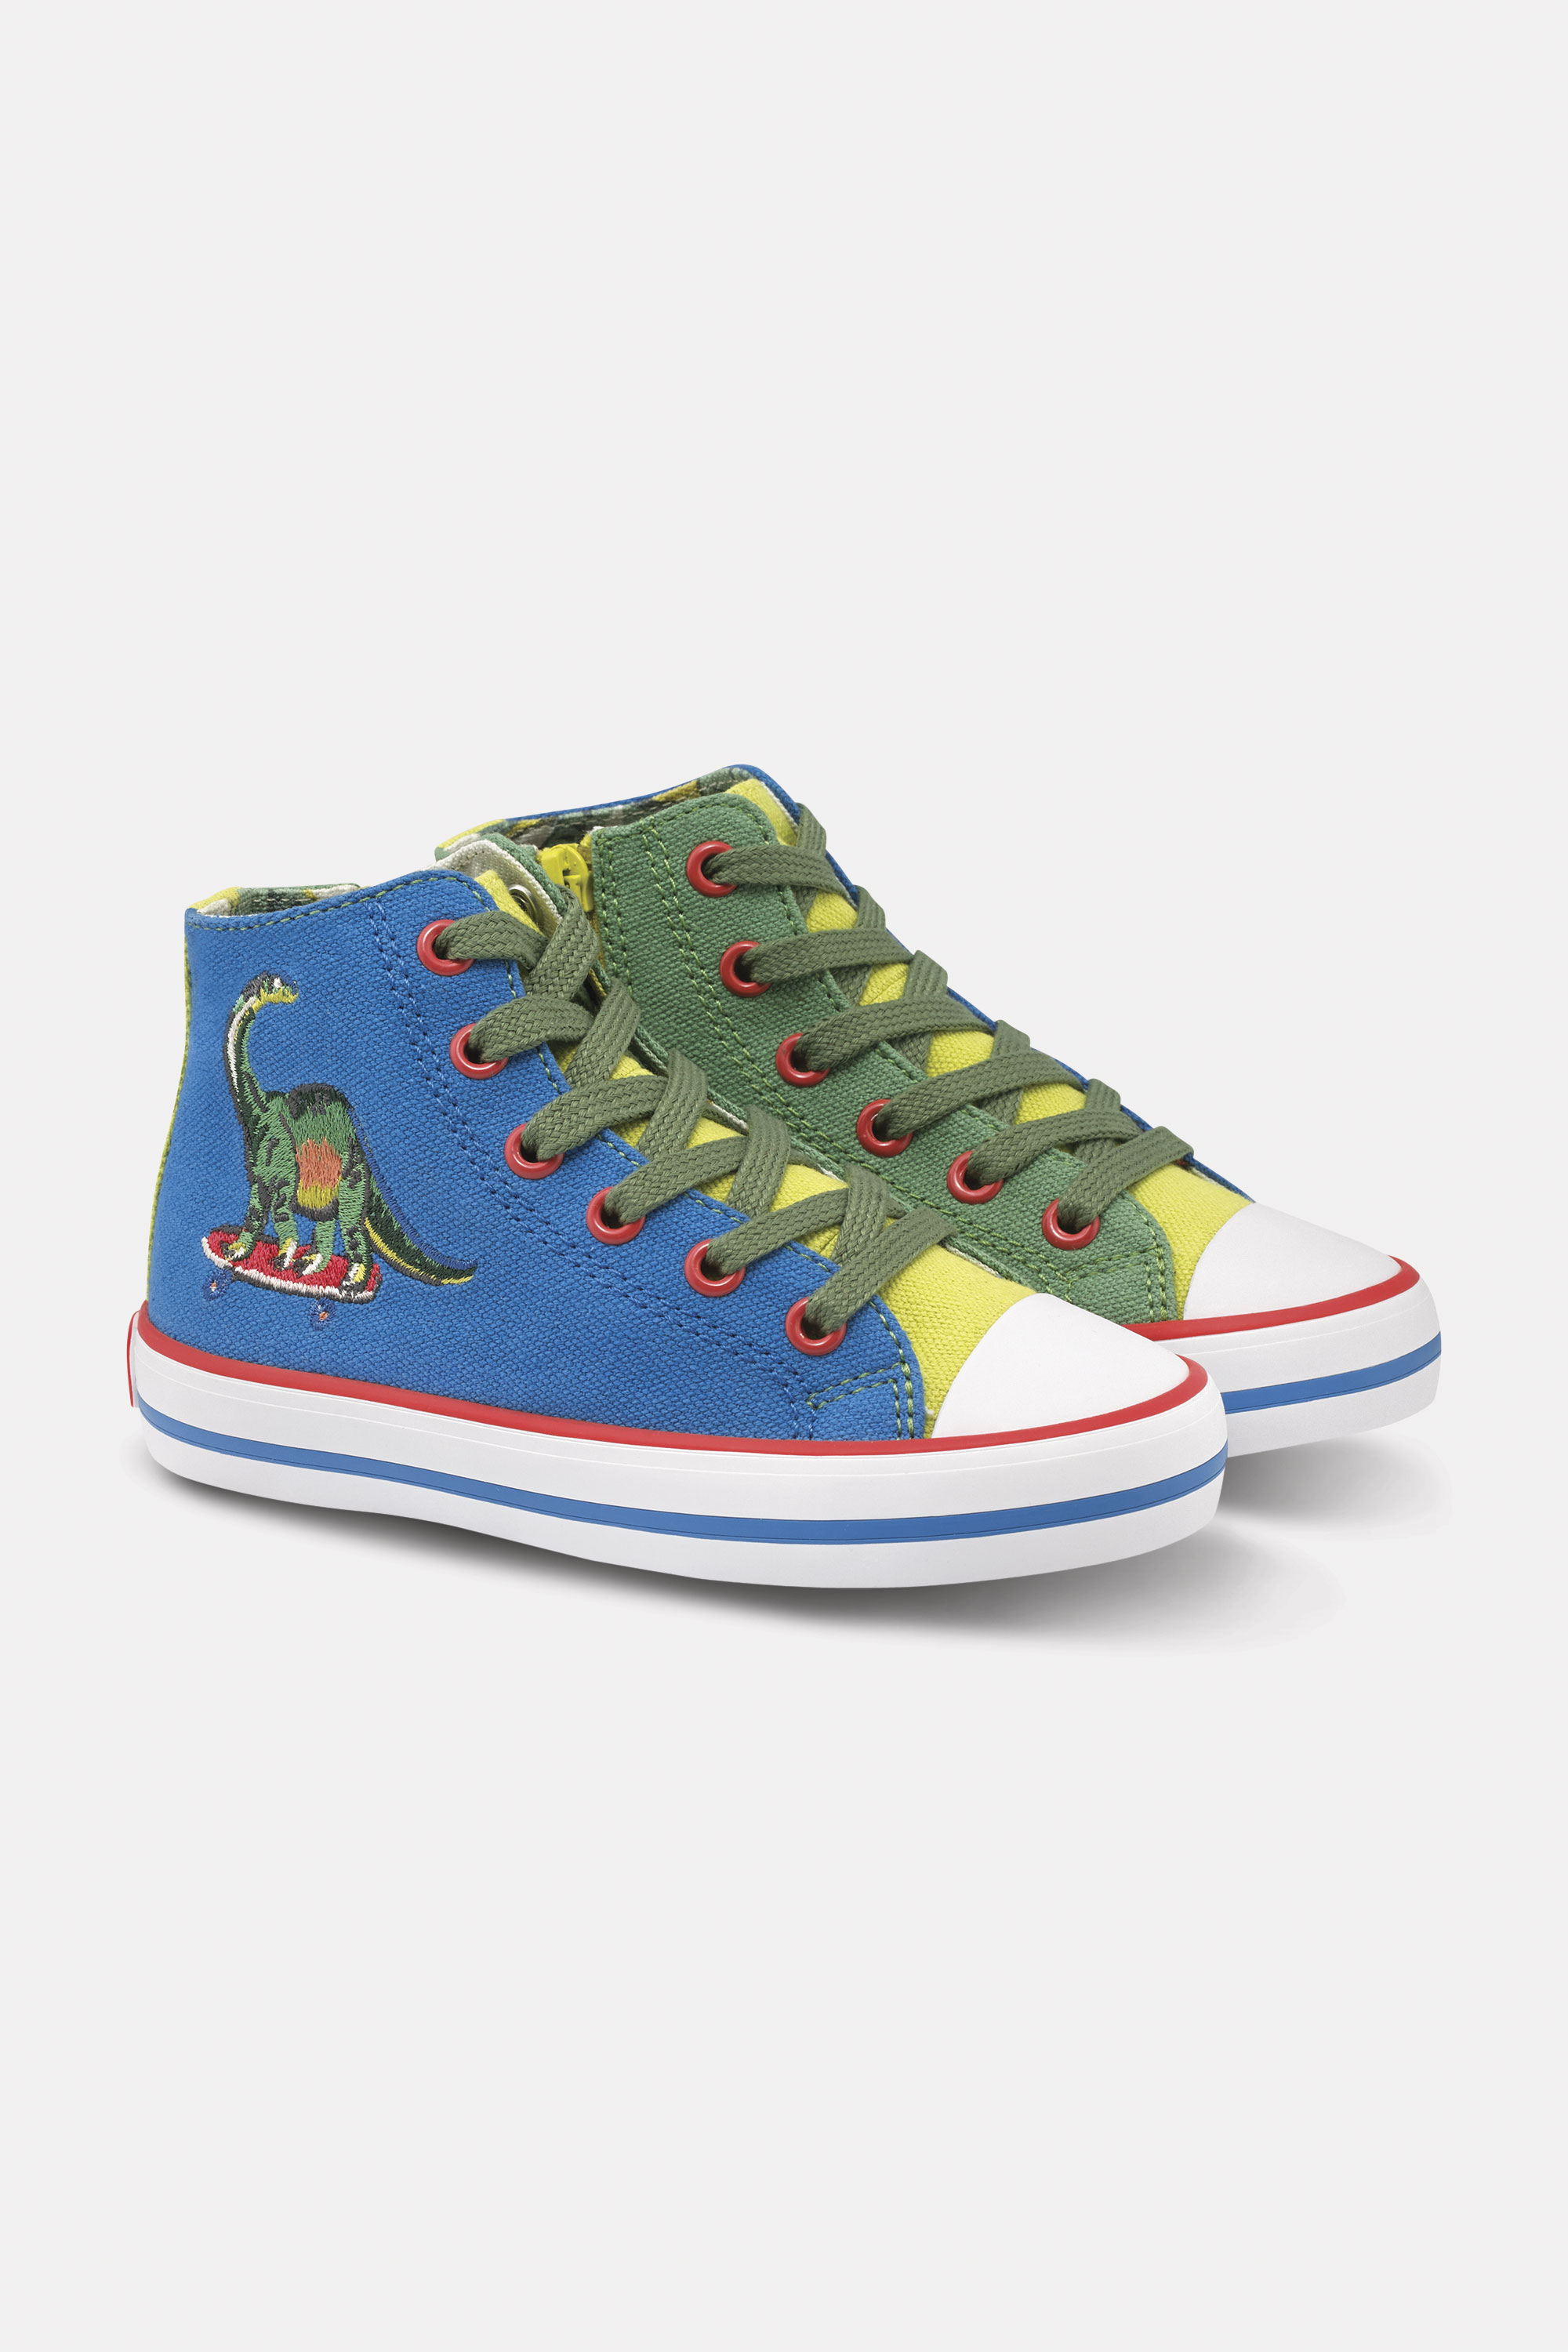 Cath Kidston Kids High Top Trainers Shoes in Oyster Shell, Skateboard Dino, 100% Uncoated Cotton Can